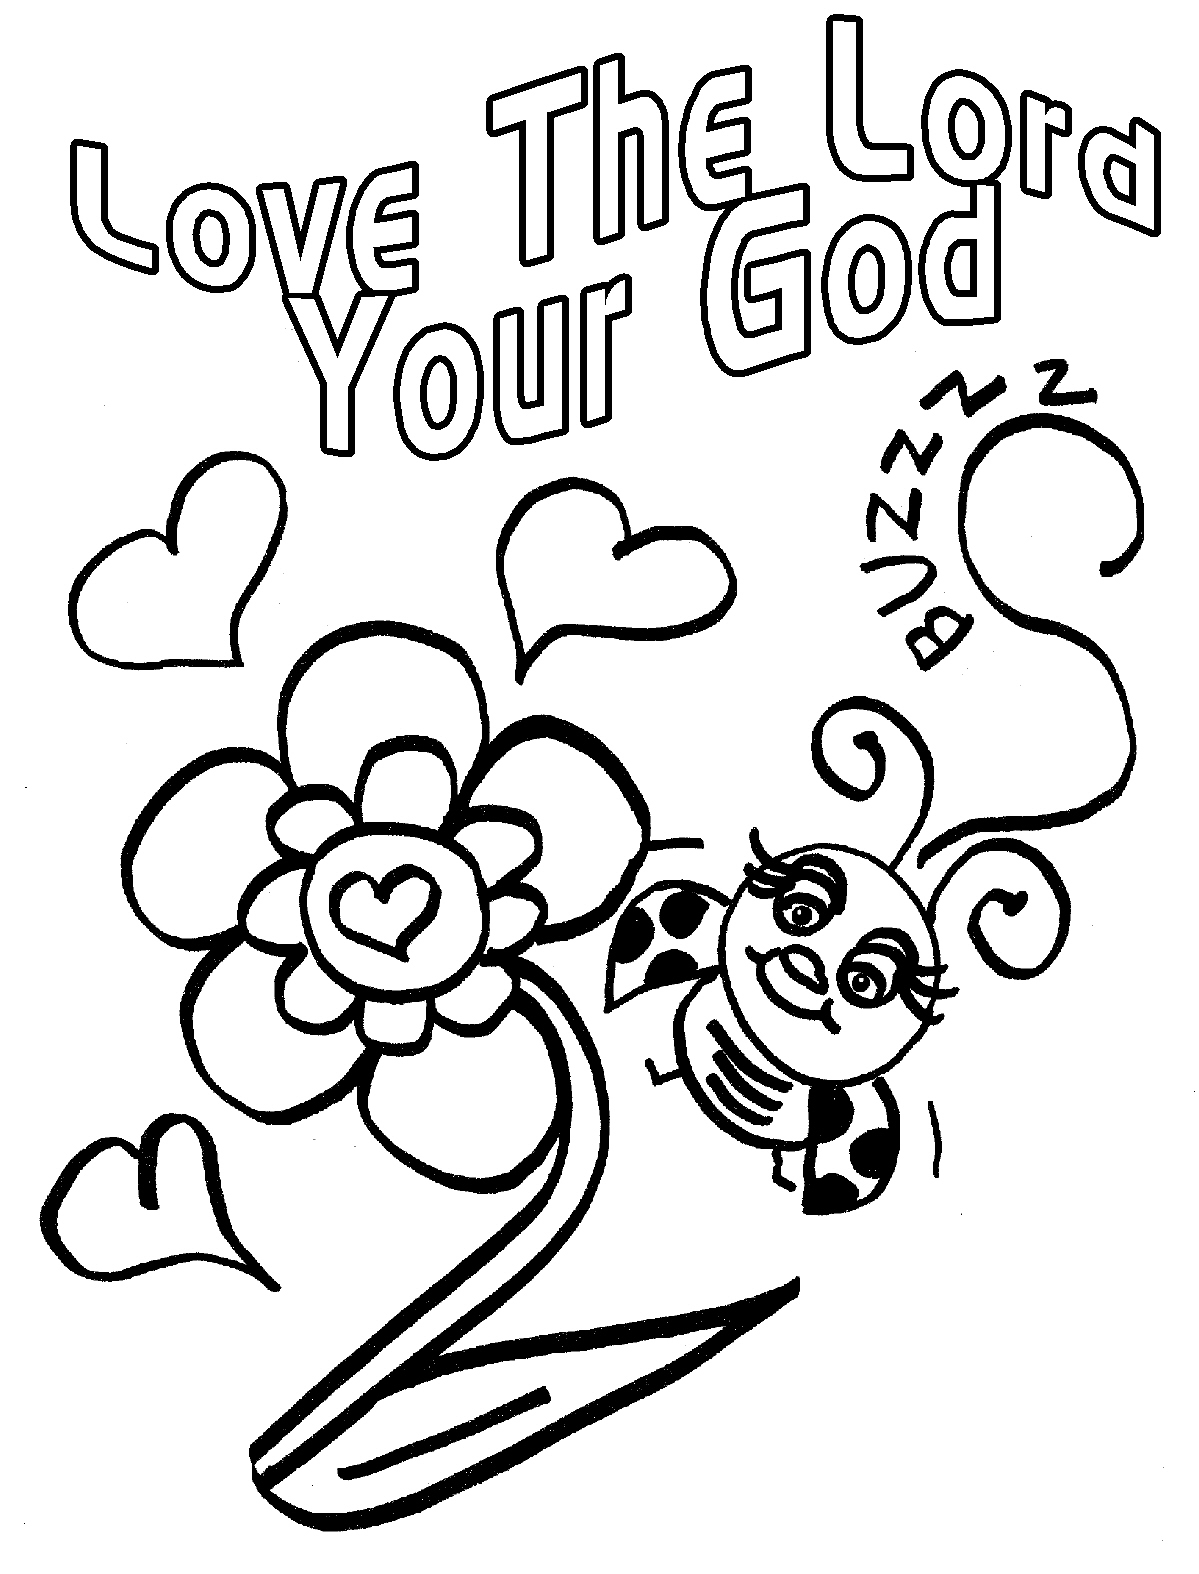 Coloring Page Jesus Loves You